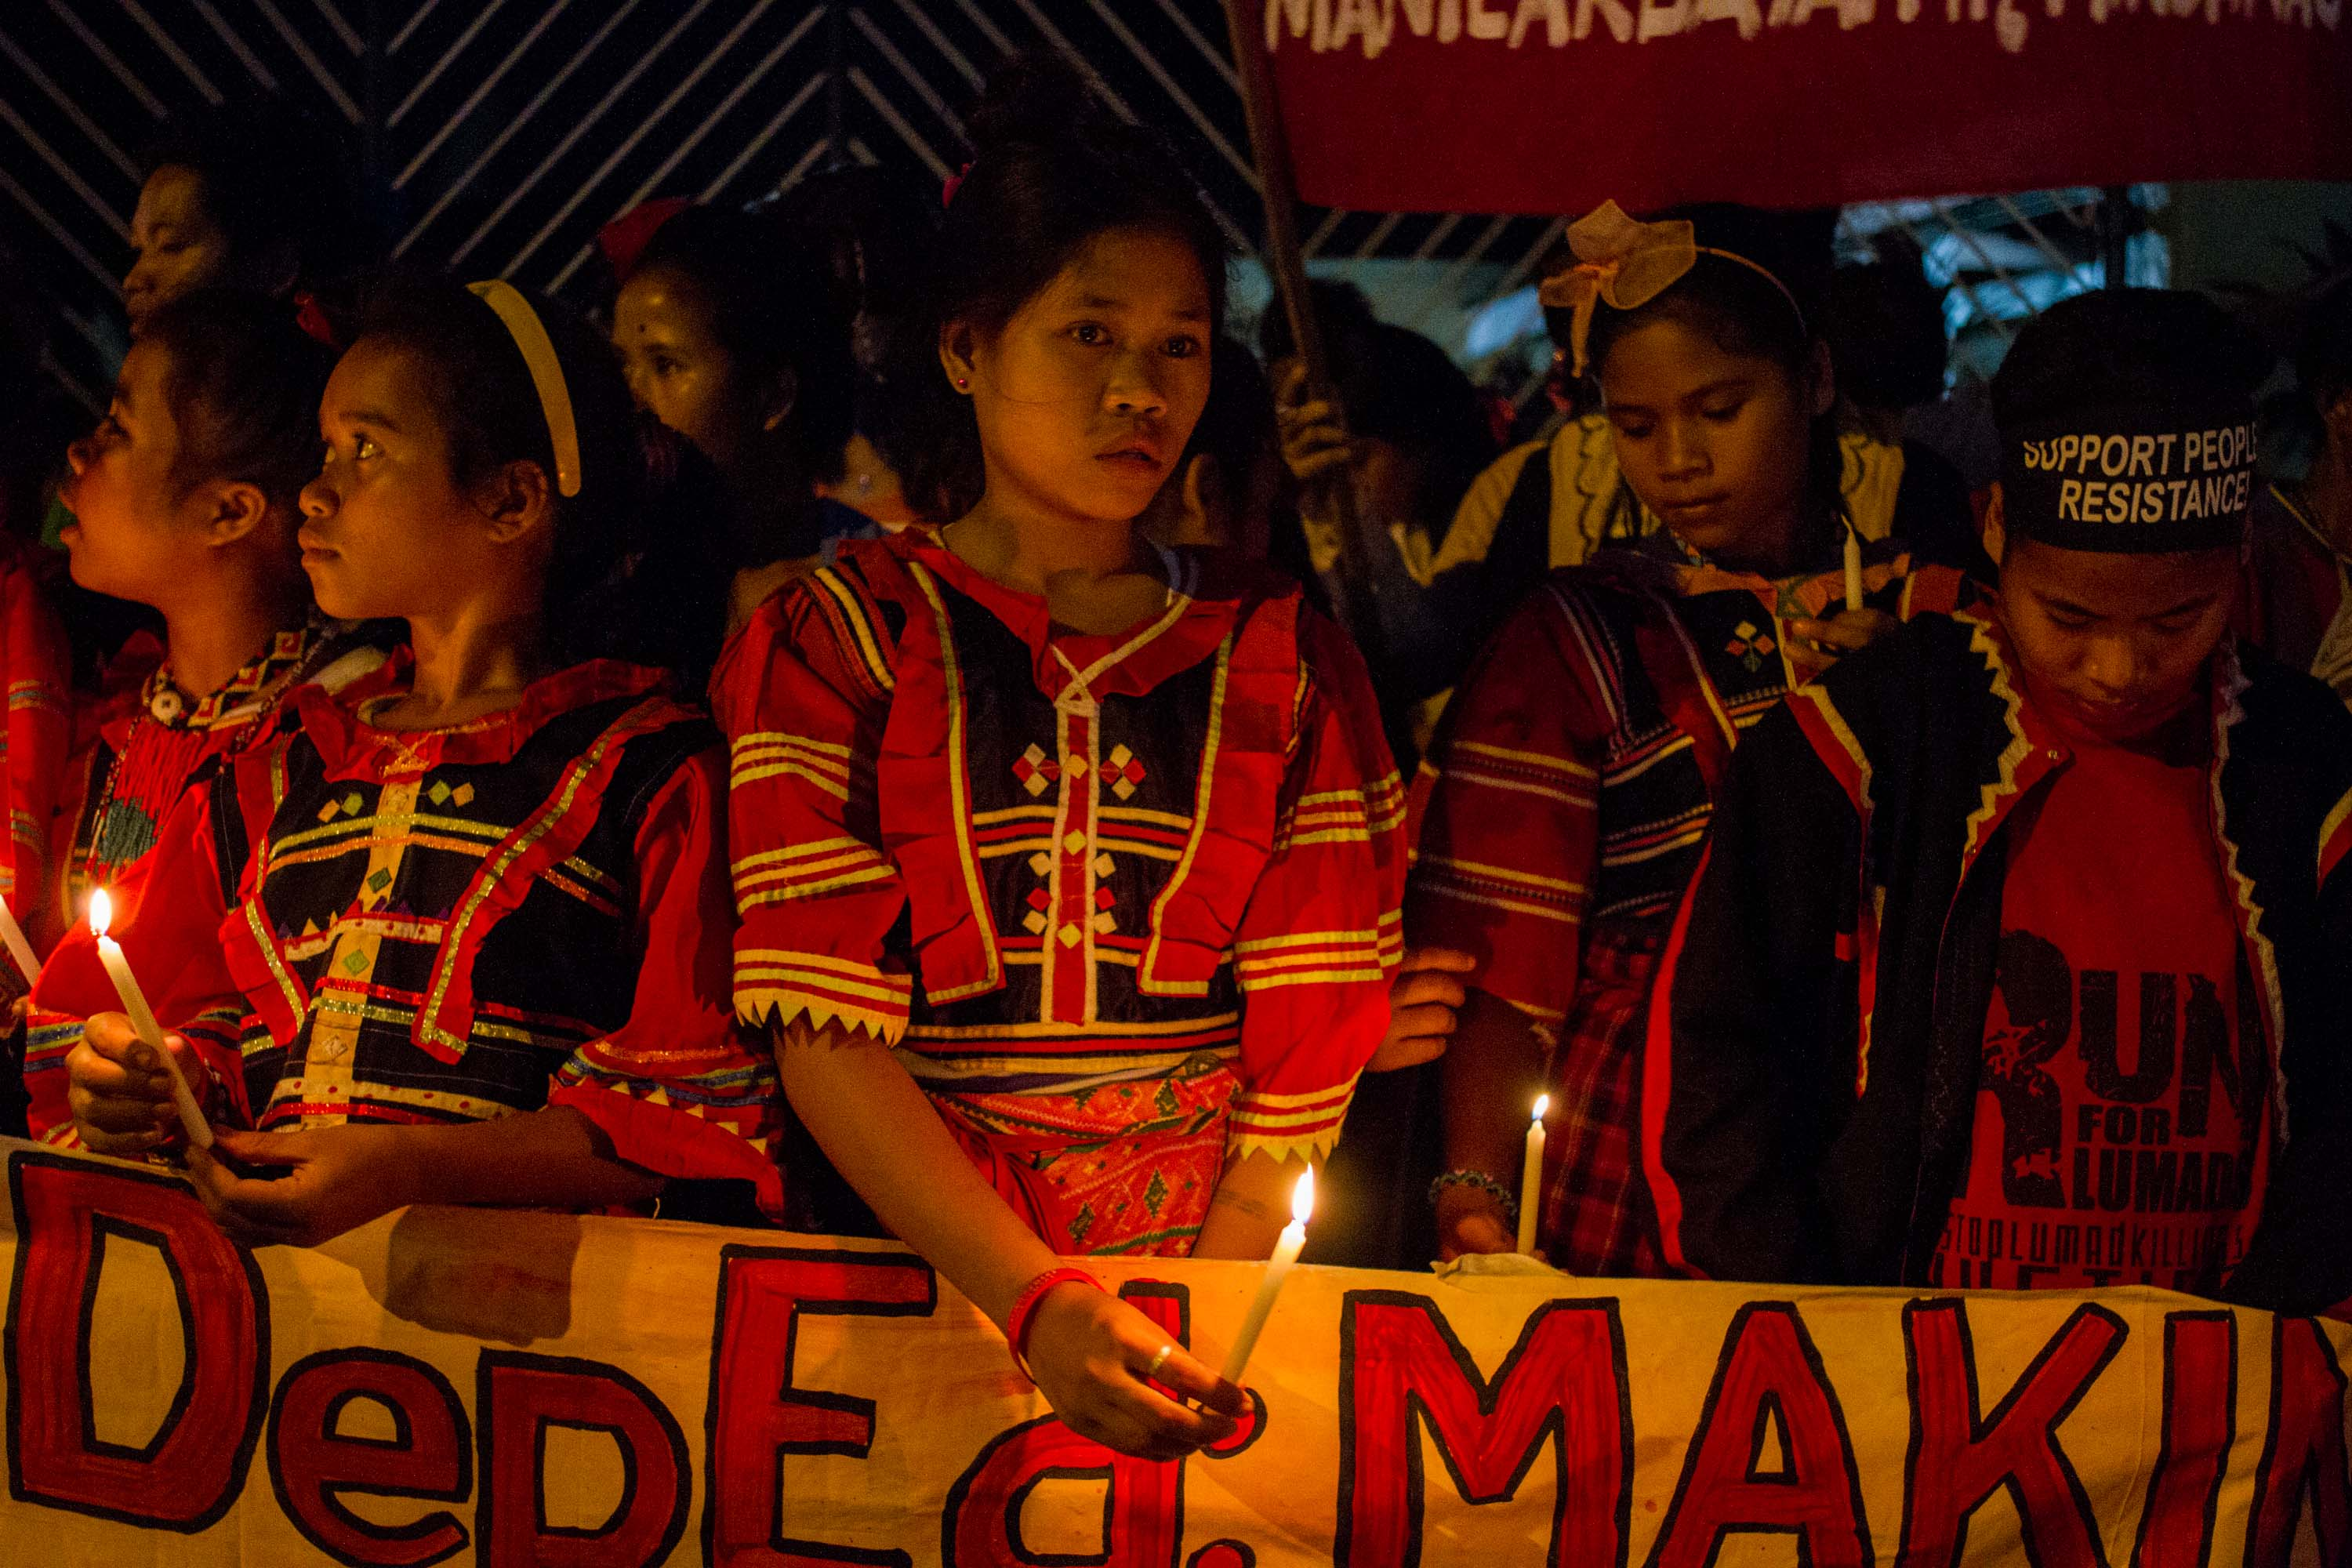 INDIGENOUS PEOPLES. Students of various tribal schools from Mindanao stage a protest rally and a candle lighting activity in front of the DEPED Main Office in Ortigas. Photo by Mark Saludes / Rappler